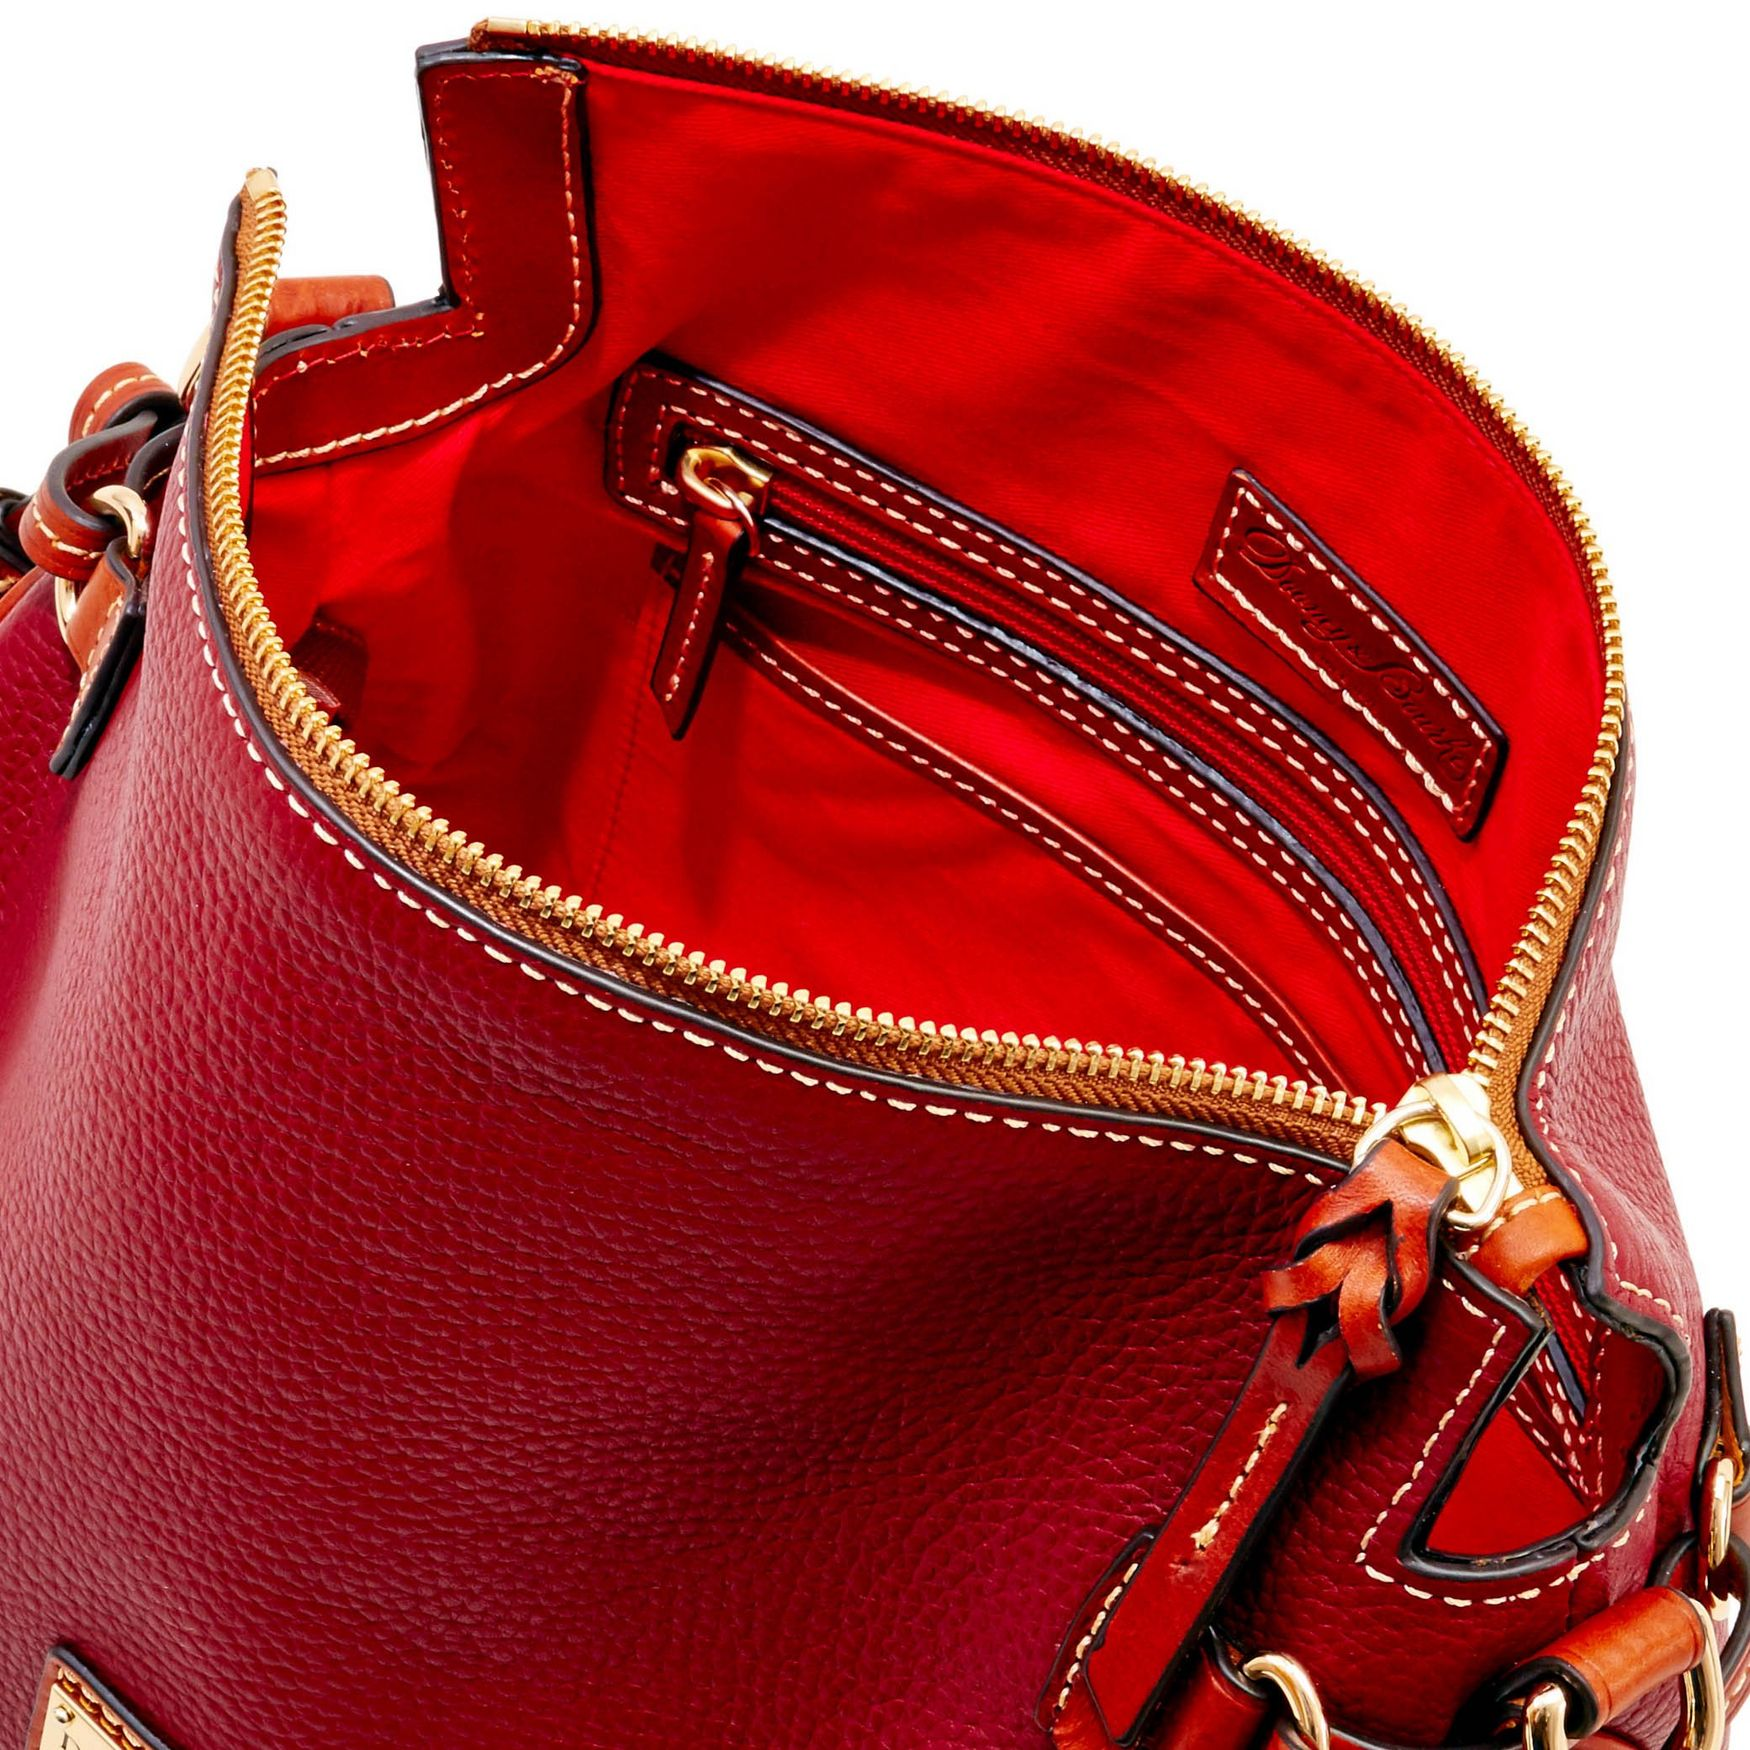 Dooney-amp-Bourke-Pebble-Grain-Medium-Zip-Crossbody-Shoulder-Bag thumbnail 37